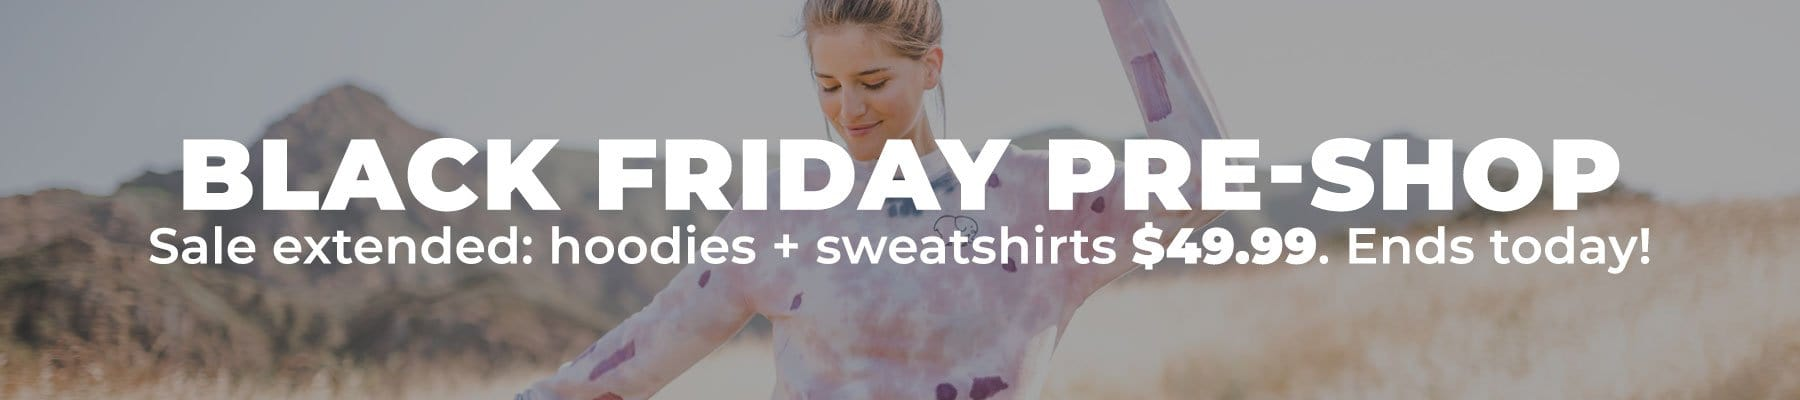 Black Friday pre-shop: hoodies + sweatshirts